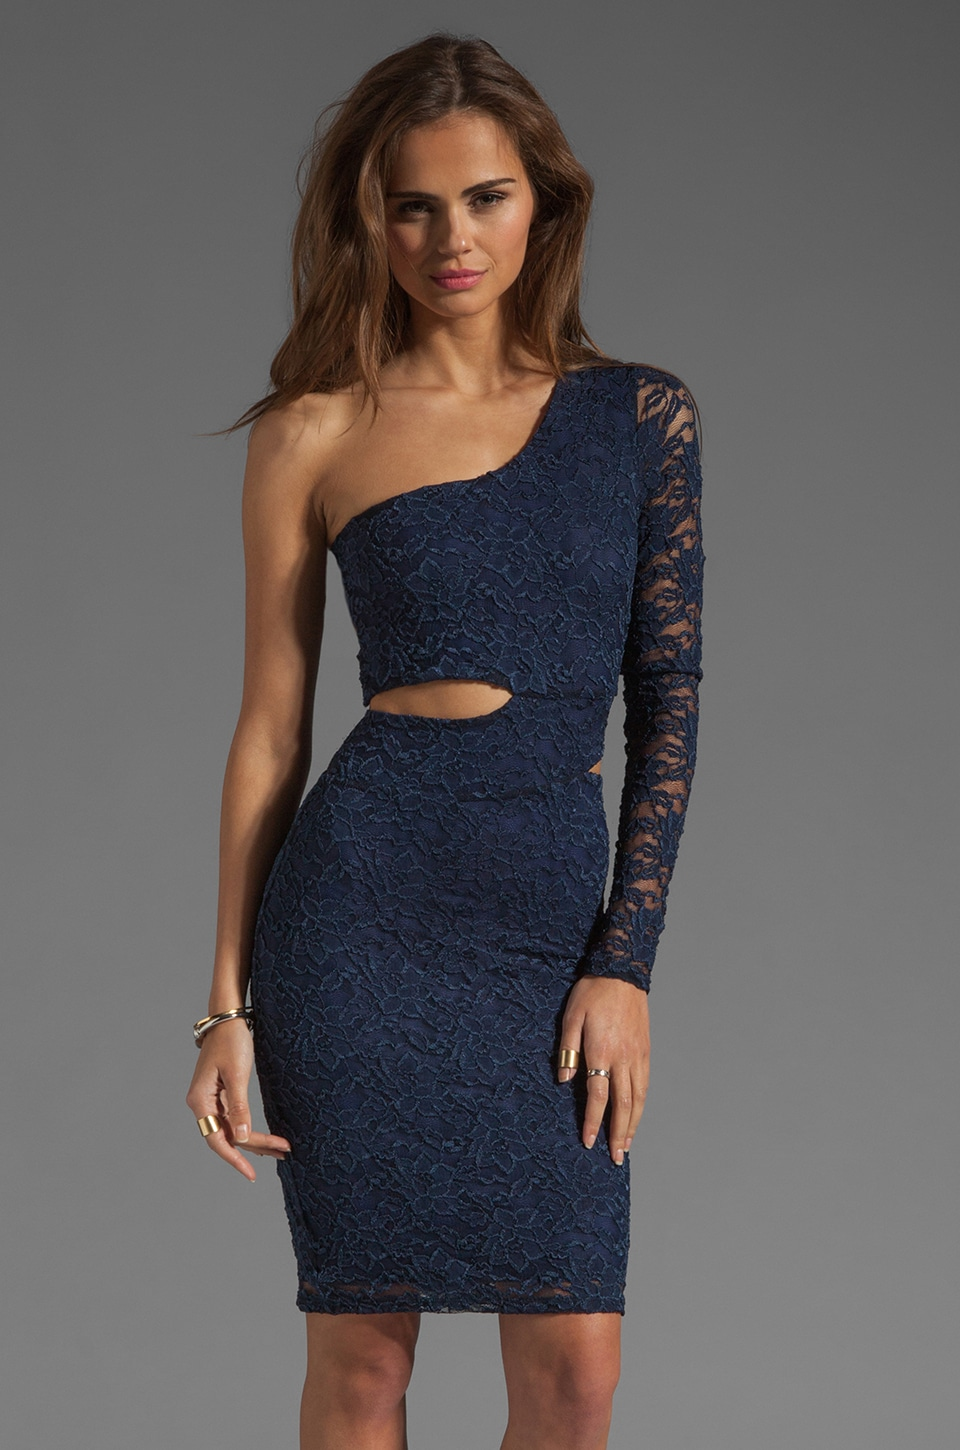 Donna Mizani Passion Lace Classic Cut Out Dress in Navy